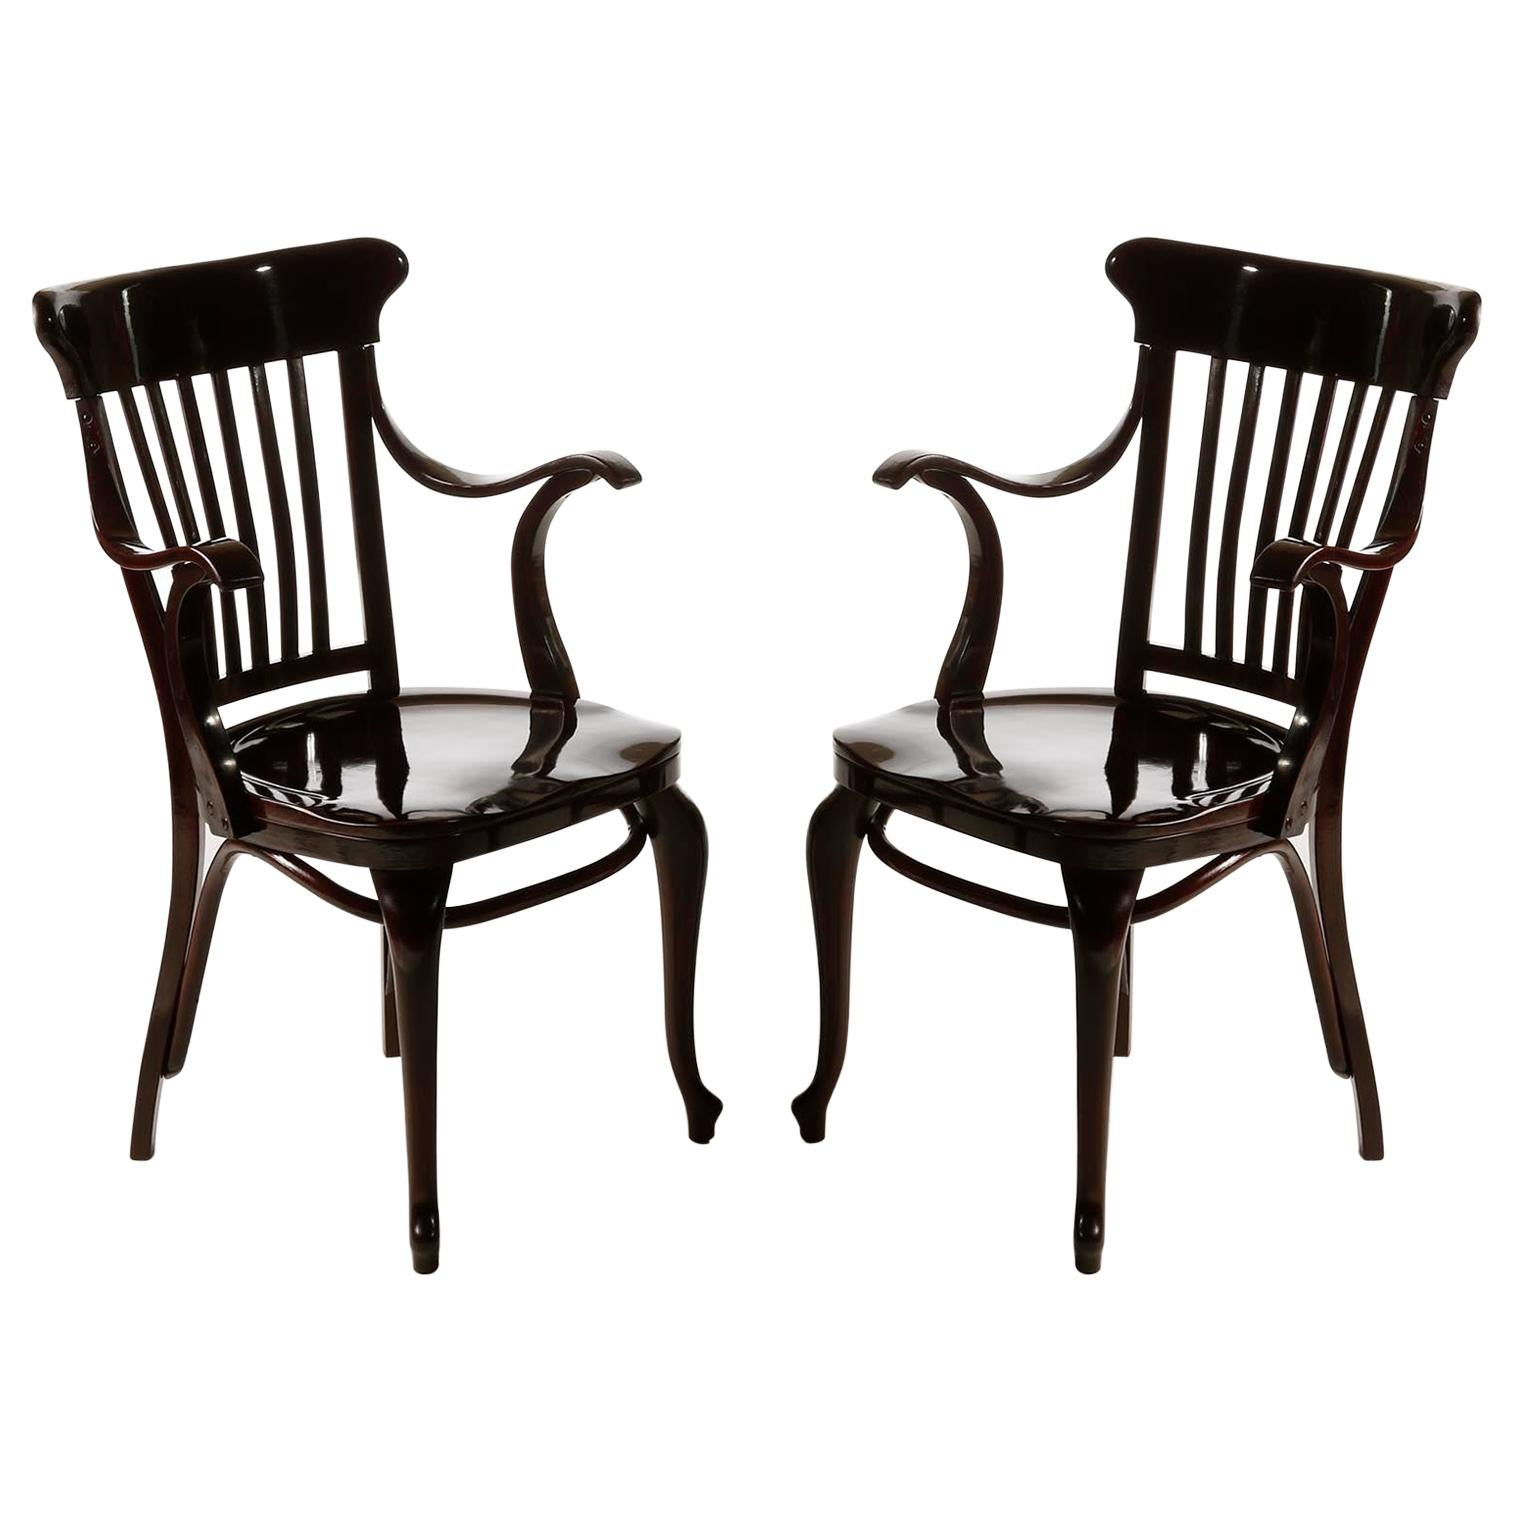 Pair of Adolf Loos Armchairs Chairs Cafe Capua Vienna, Thonet, 1913